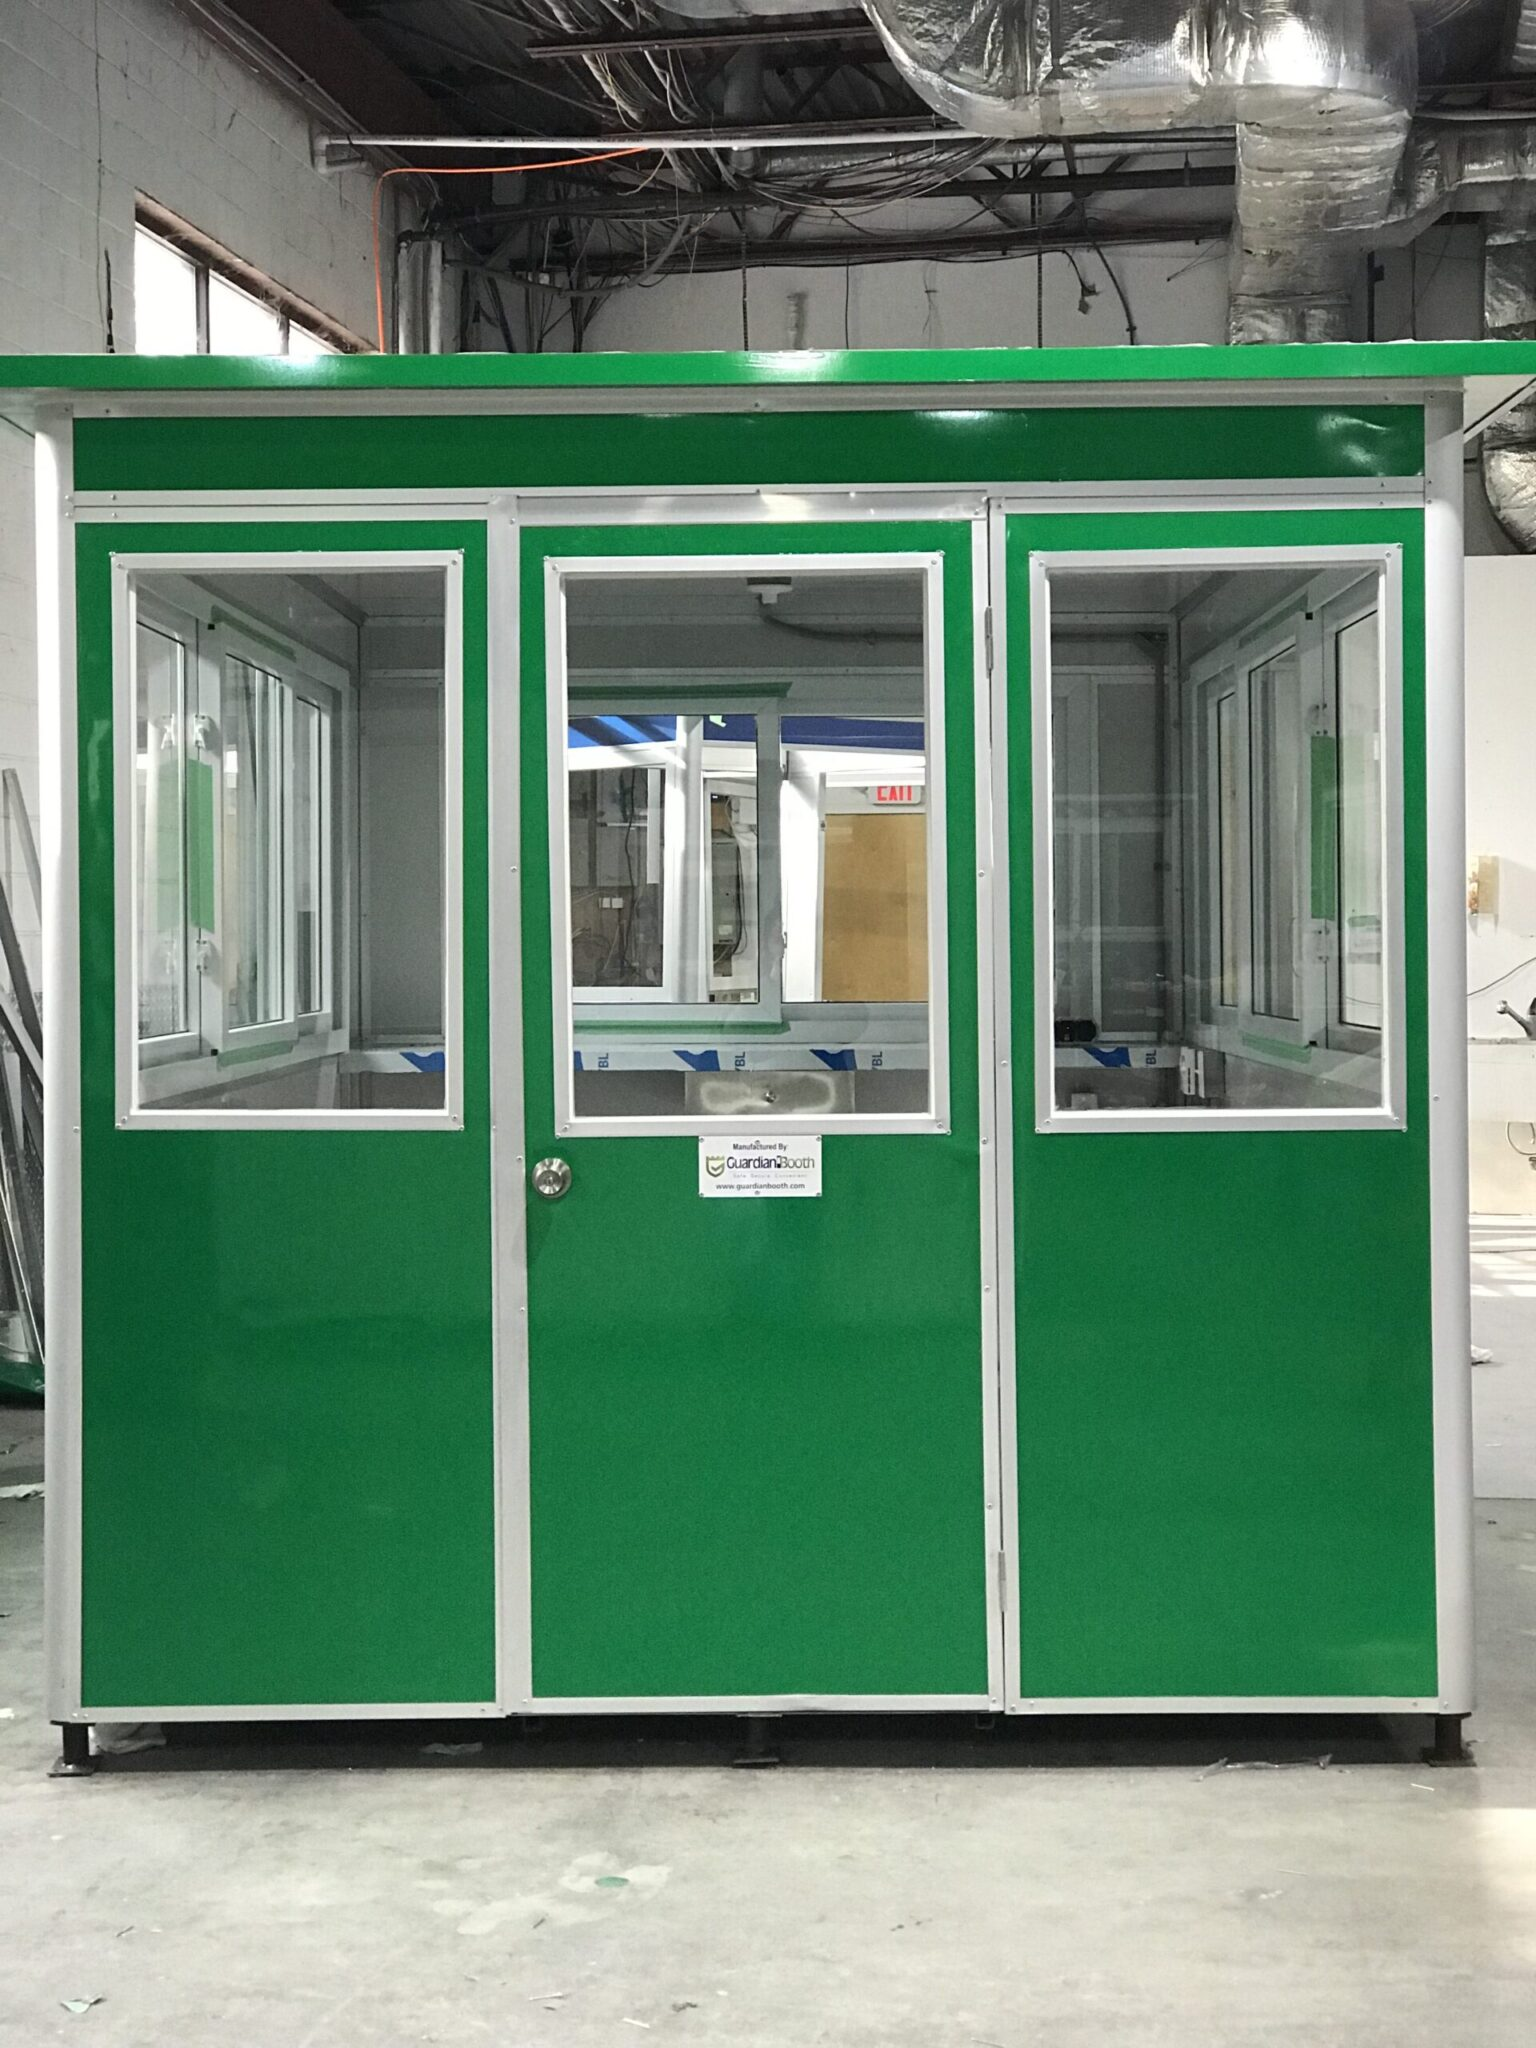 Color Kelly Green Wrap, 8x8 School Security Booth in Newark, NJ